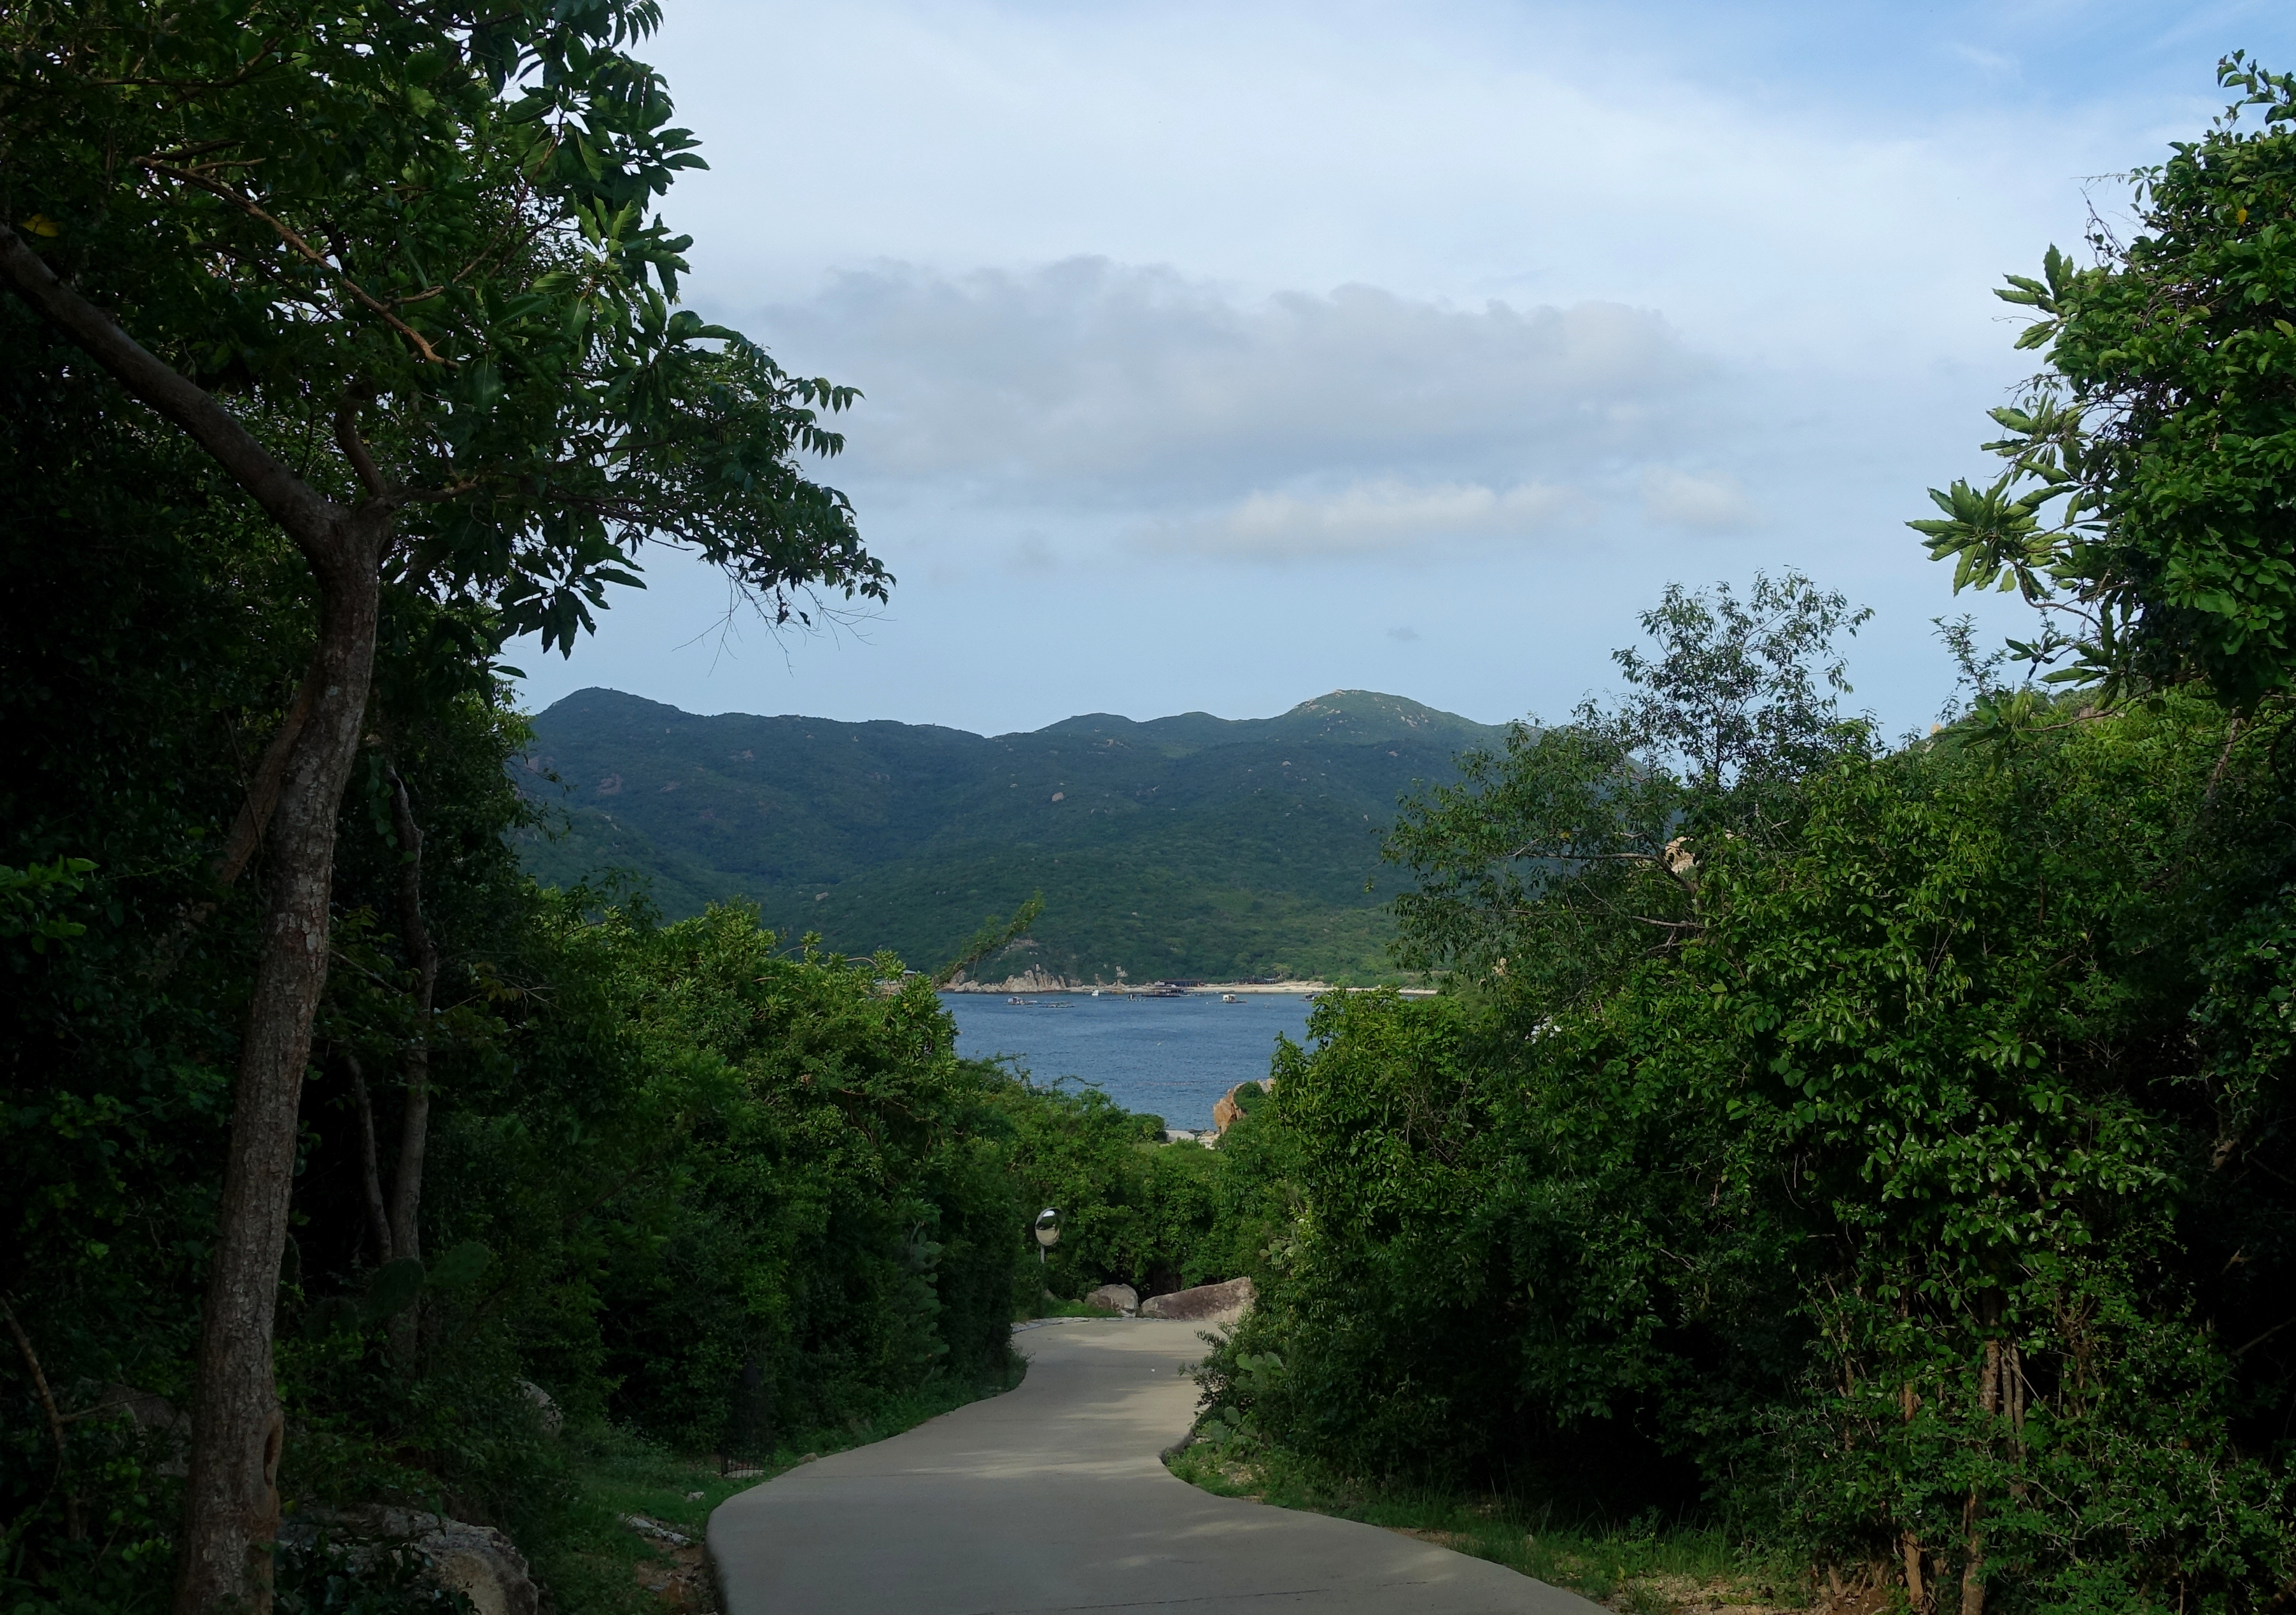 Sea View from a Resort Path